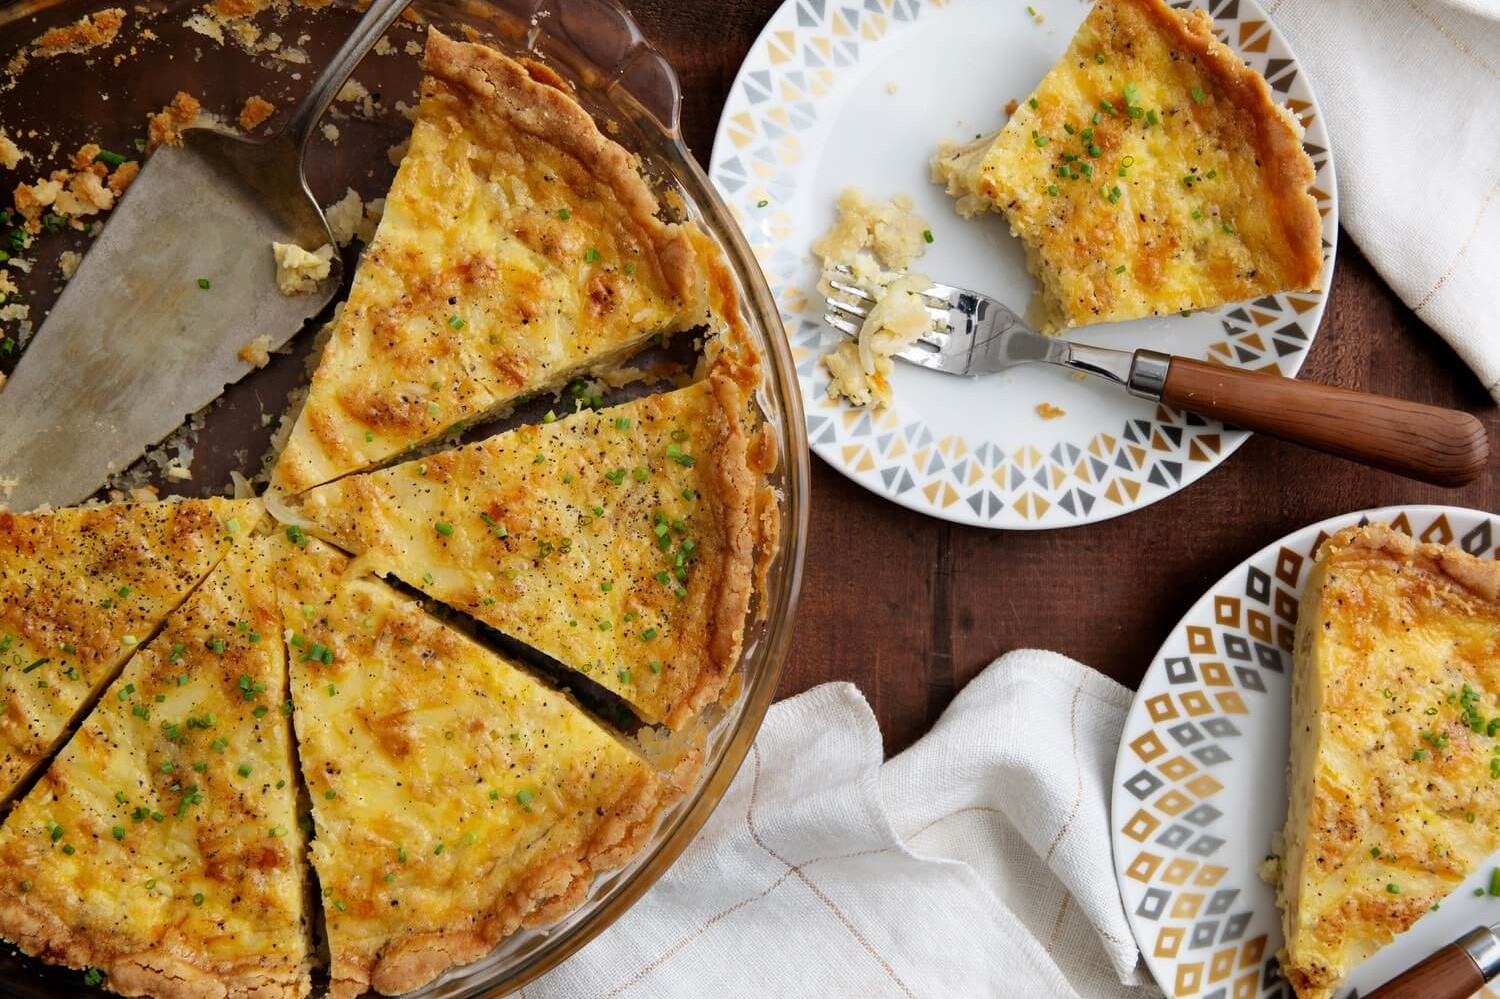 This keto caramelized onion quiche is made with organic eggs, gruyére cheese, and heavy cream. The crust is cooked until golden brown and made with almond flour. | peteandgerrys.com